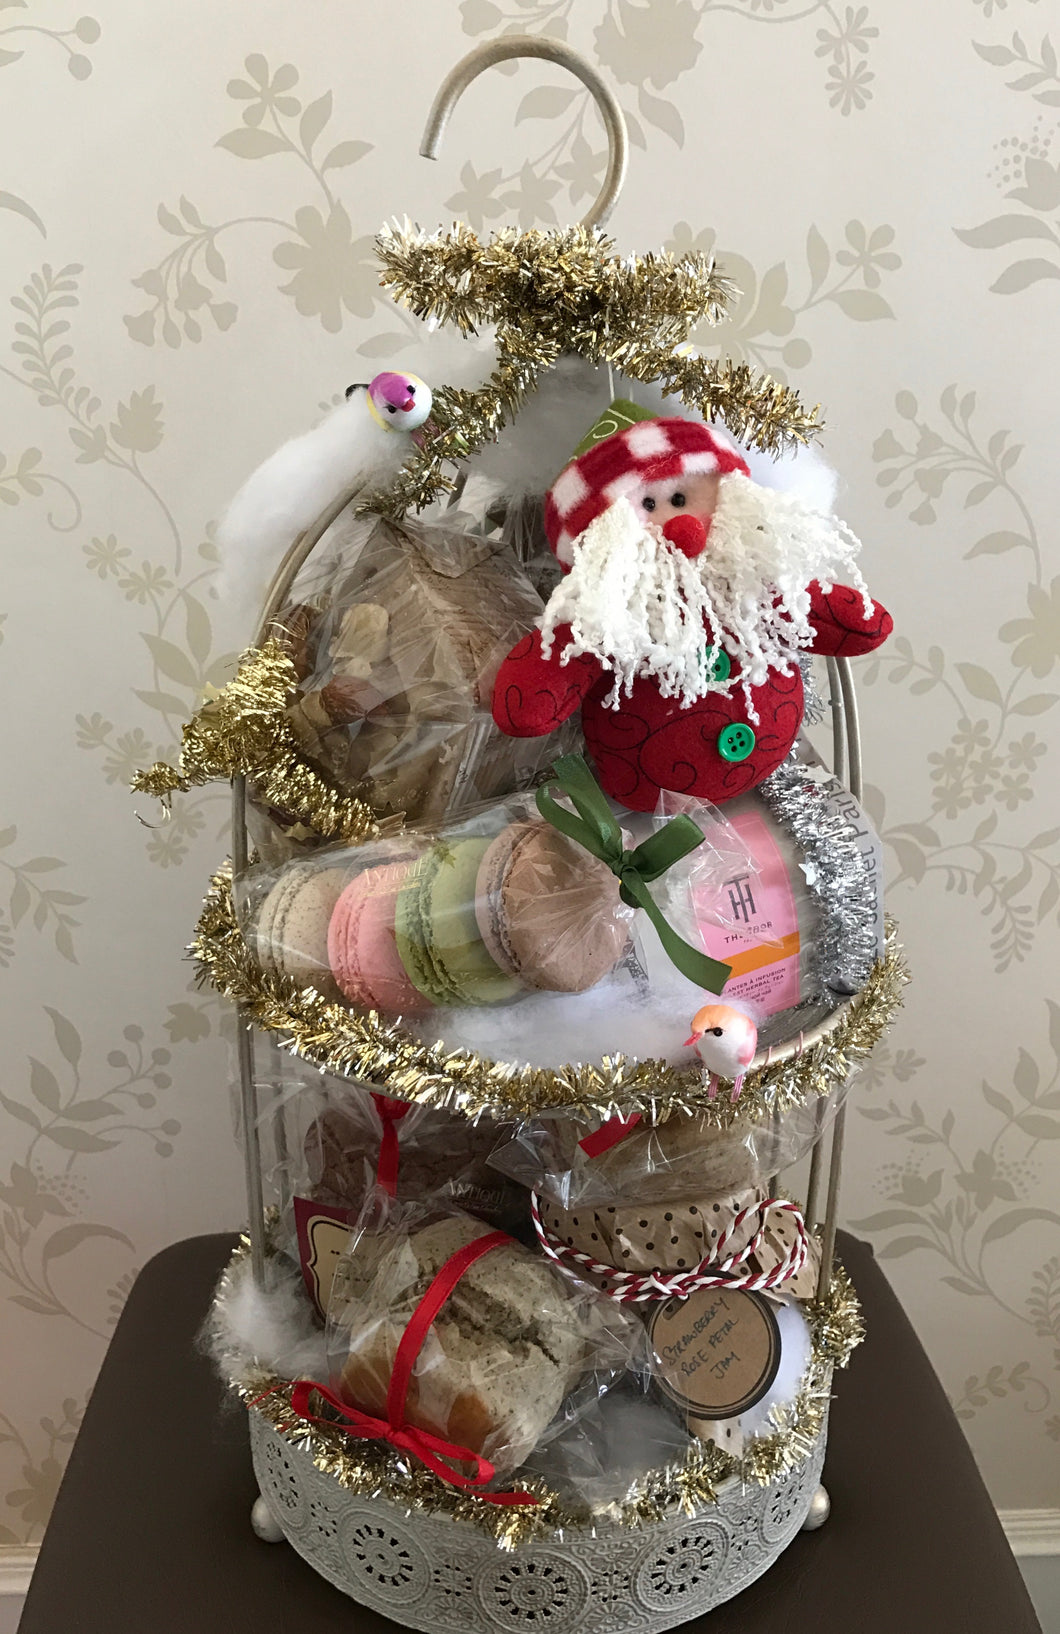 Christmas Sweets Afternoon Tea Gift Set